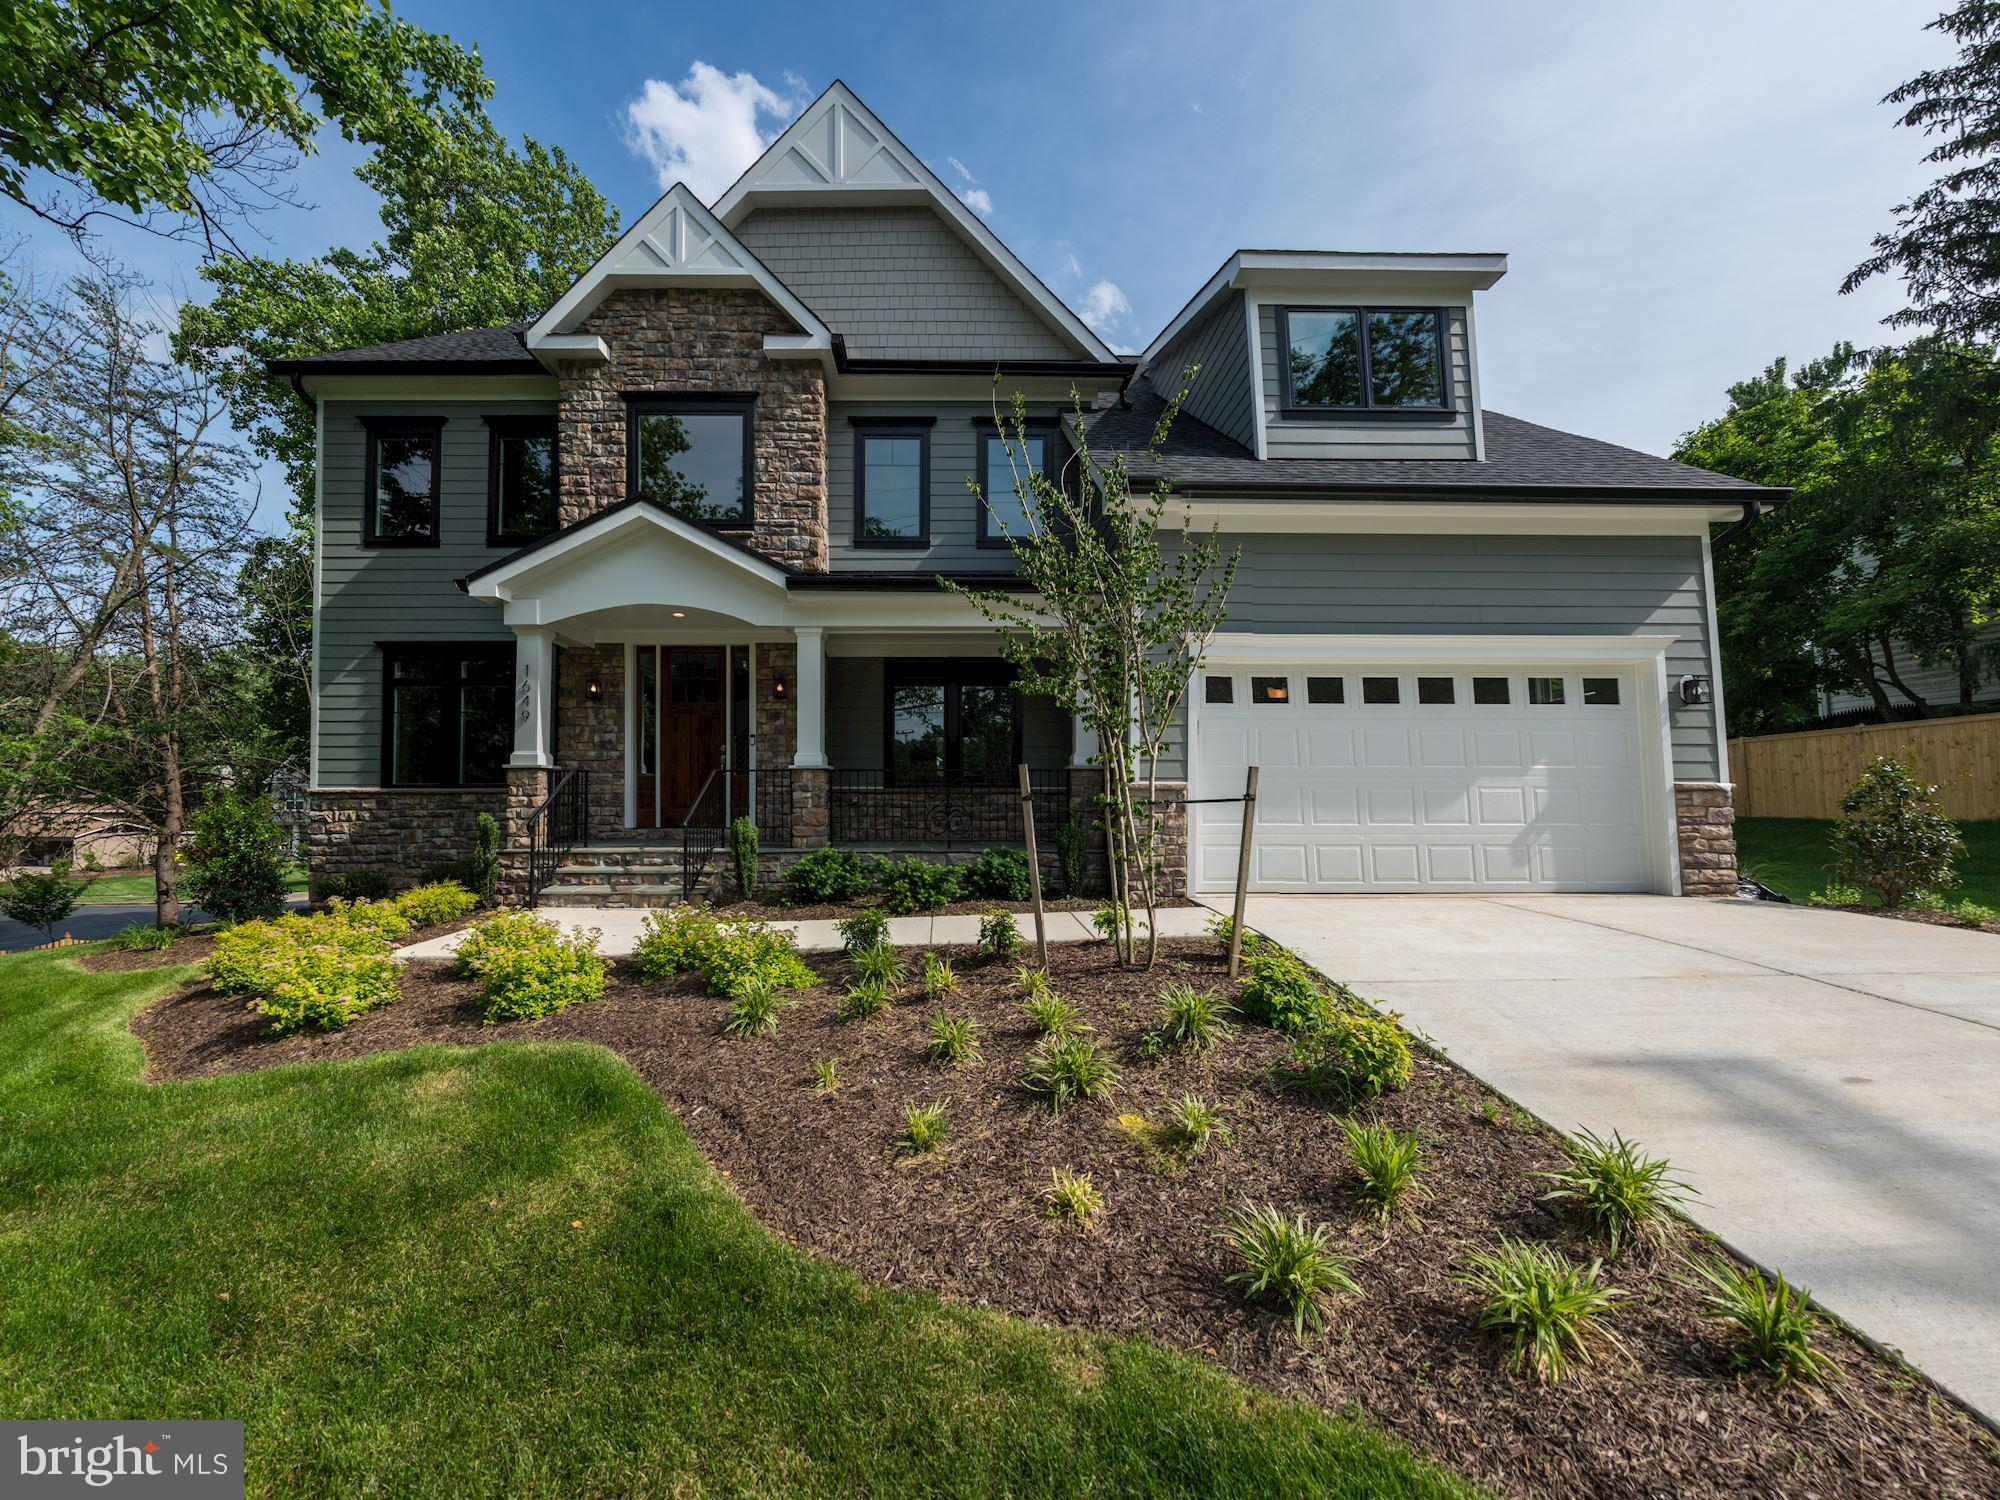 1605 WRIGHTSON DR, MCLEAN, VA 22101